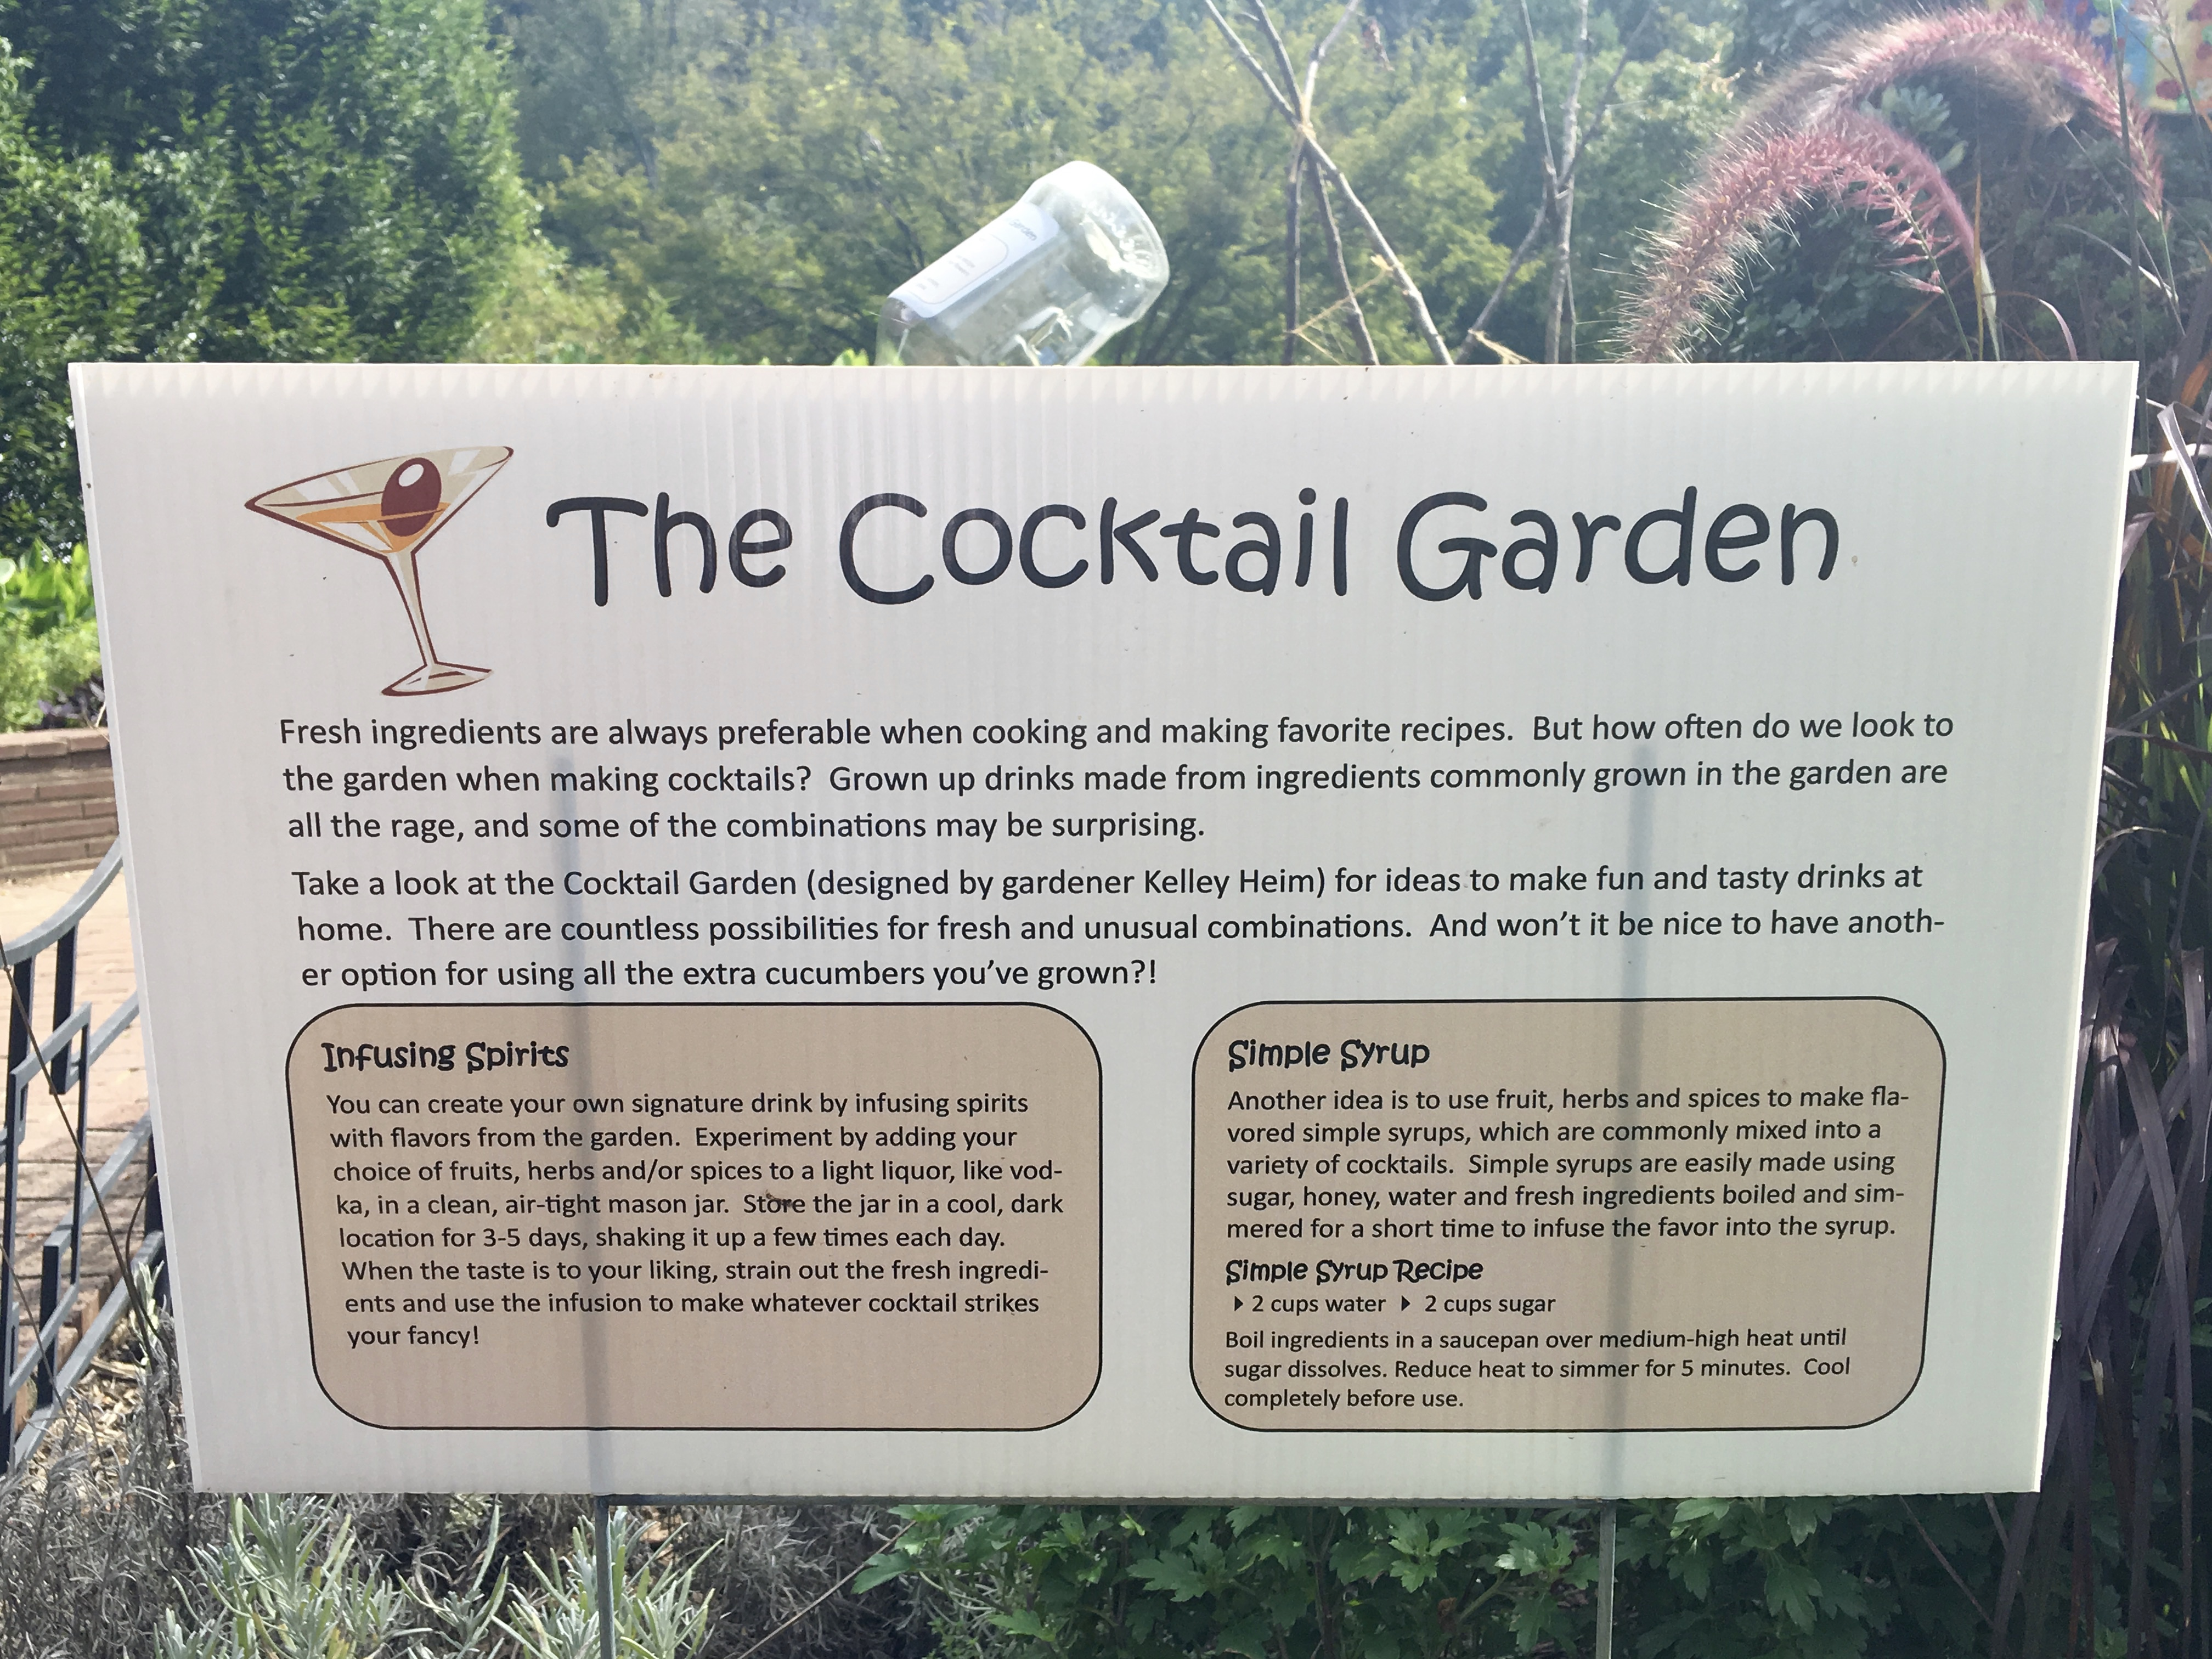 Leaving The Cocktail Garden To Explore New Areas Brings The Eye To So Many  Exceptional Sites How To Be A Latin Lover